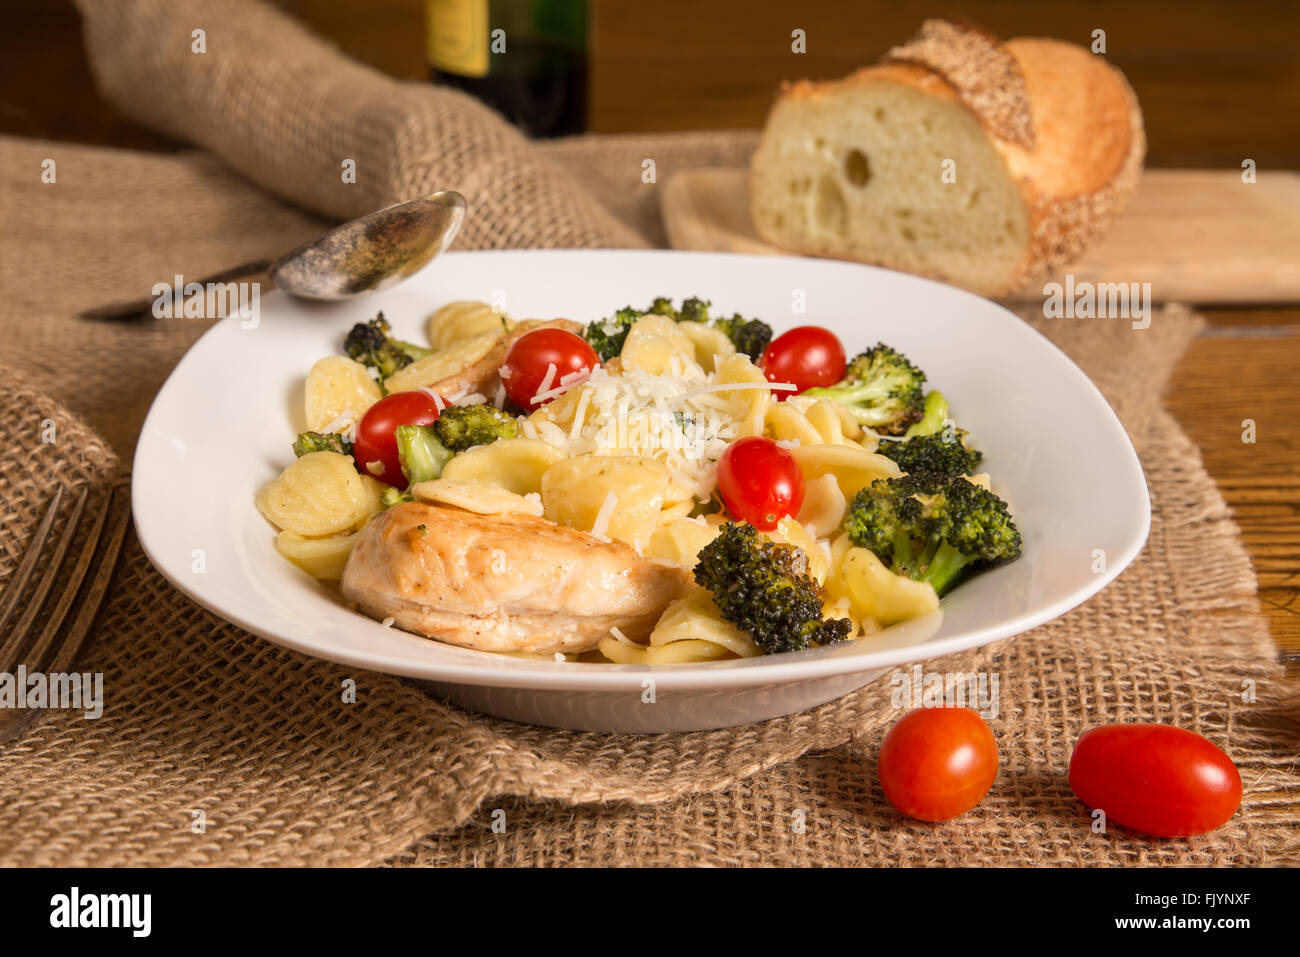 Authentic Italian meal with homemade orecchiette pasta, chicken, broccoli, tomatoes. Loaf of Italian bread and bottle - Stock Image